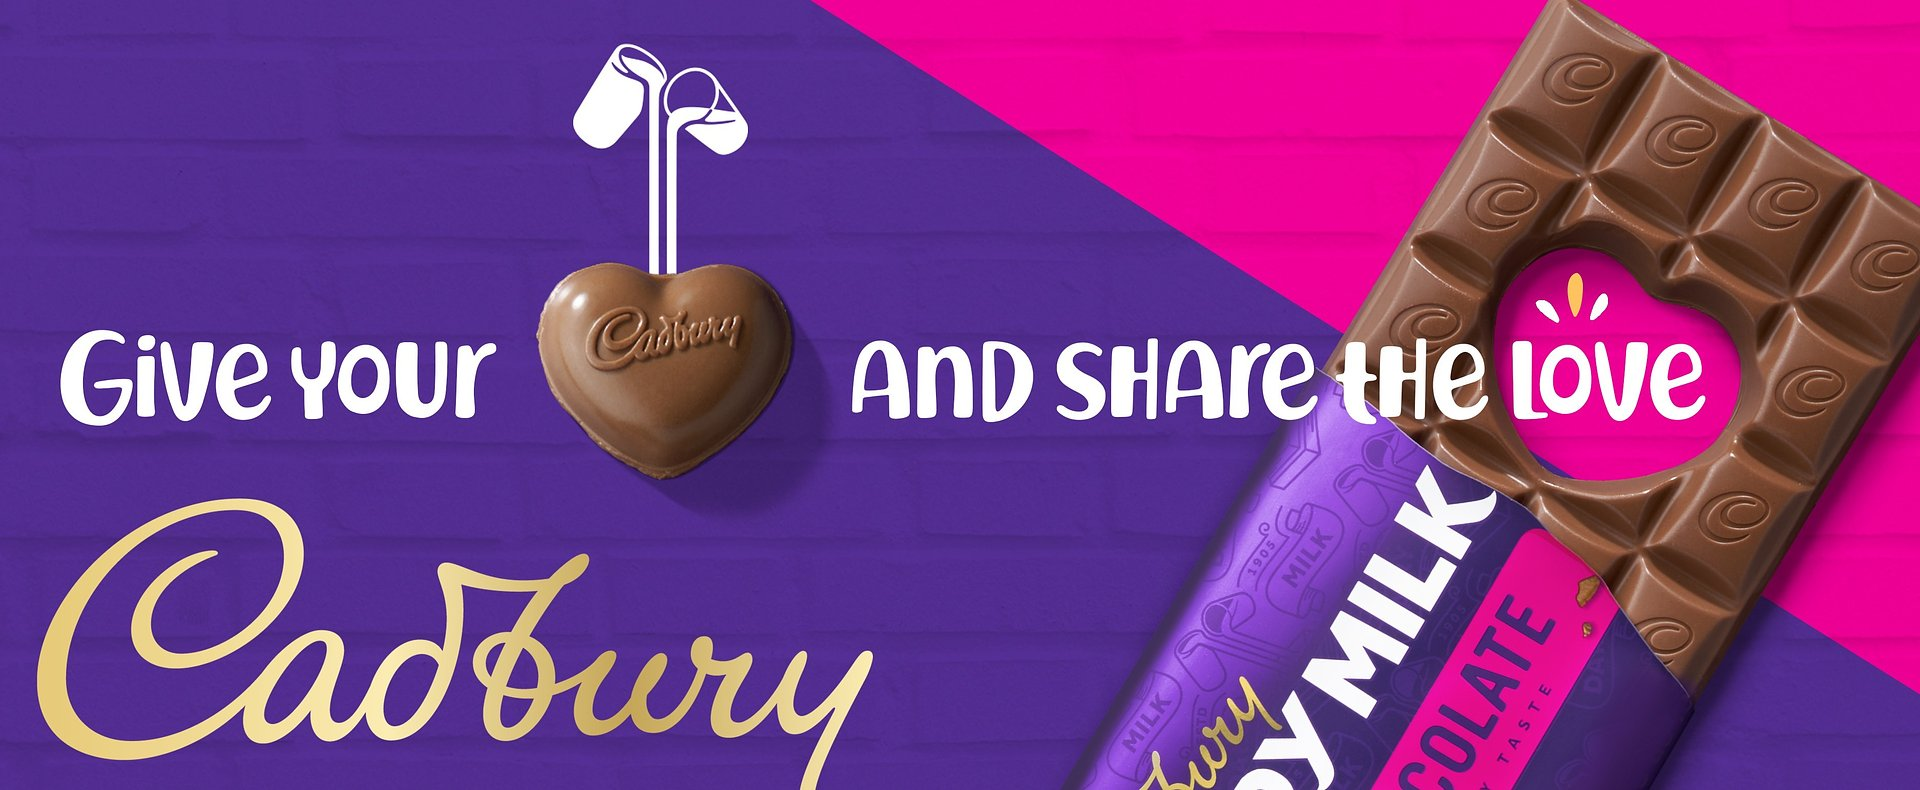 Give Your Heart and Share the Love with Cadbury this Valentine's Day